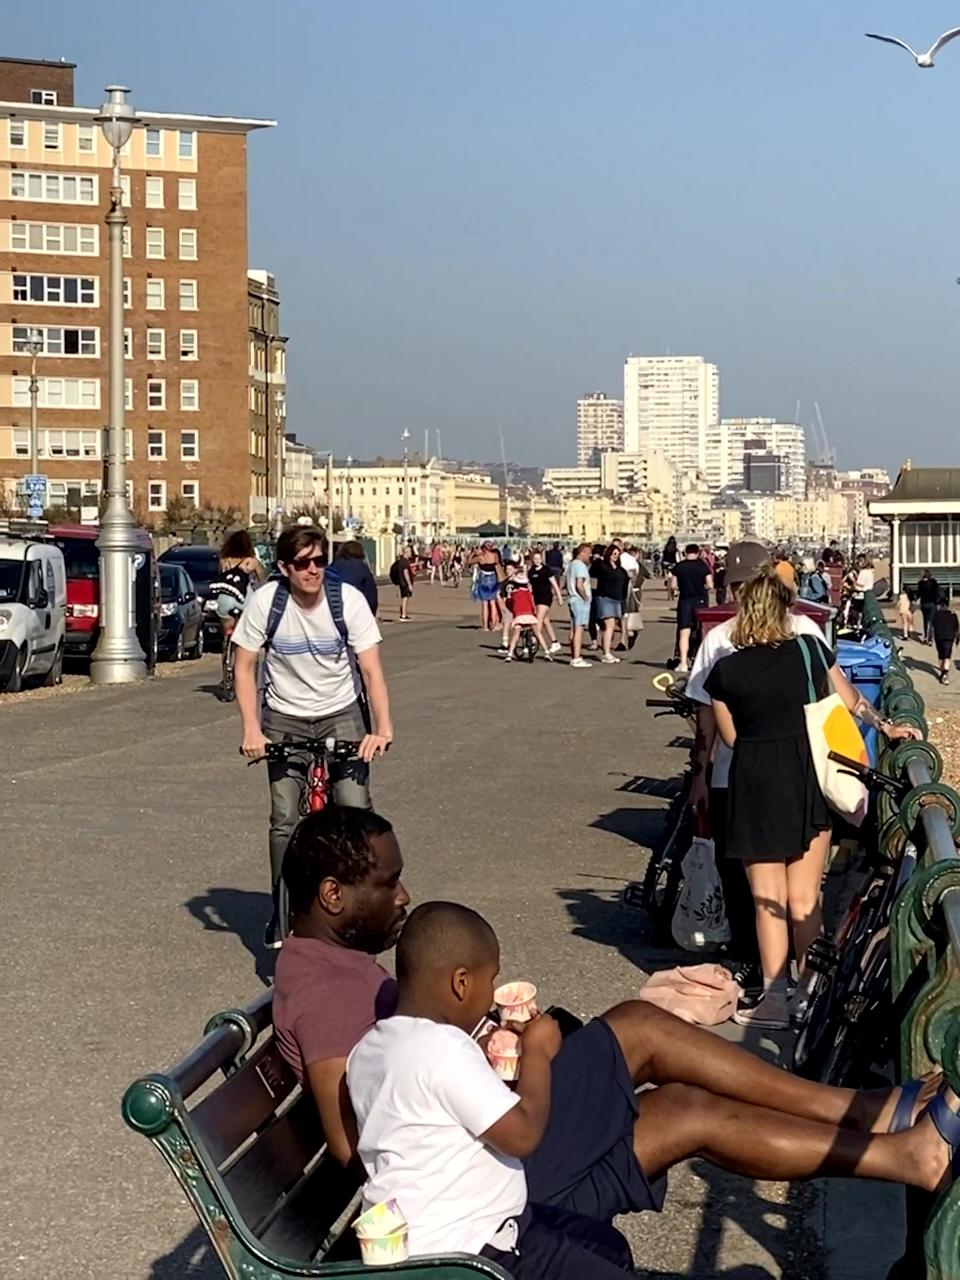 This photo shows a totally packed seafront as lockdown fatigue sets in with fed up Brits starting to breach distancing guidelines. Hundreds of locals were seen strolling along the Hove seafront in East Sussex to enjoy the sunshine, flouting the state-recommended 2m social distancing guidelines. See SWNS story SWTPbusy. The snap, taken yesterday (Thurs) at 6pm shows Brits sitting on benches enjoying ice cream and group gatherings after temperatures soared to 23 degrees.  Earlier today (Fri) Health Secretary Matt Hancock warned it was still too soon for UK lockdown measures to be relaxed.